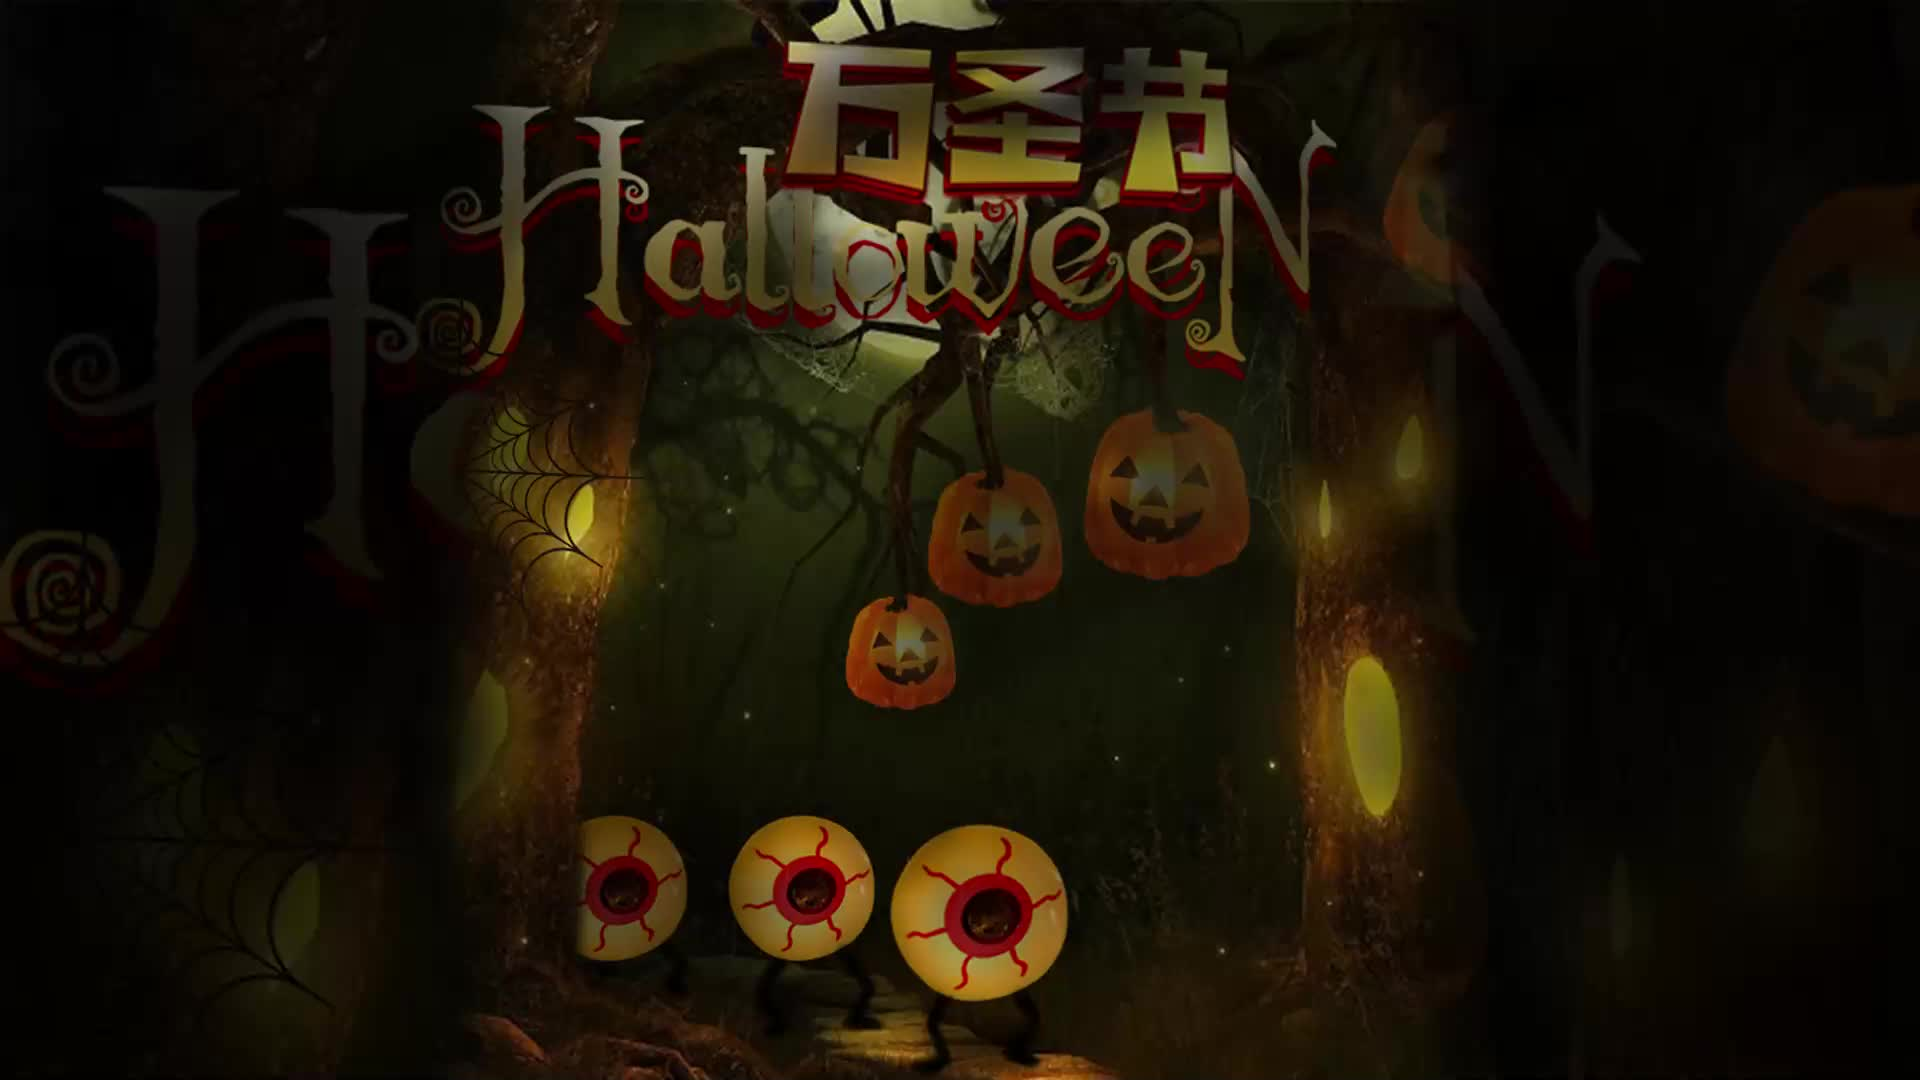 Halloween Decoration Battery Included Battery Powered LED String Lights